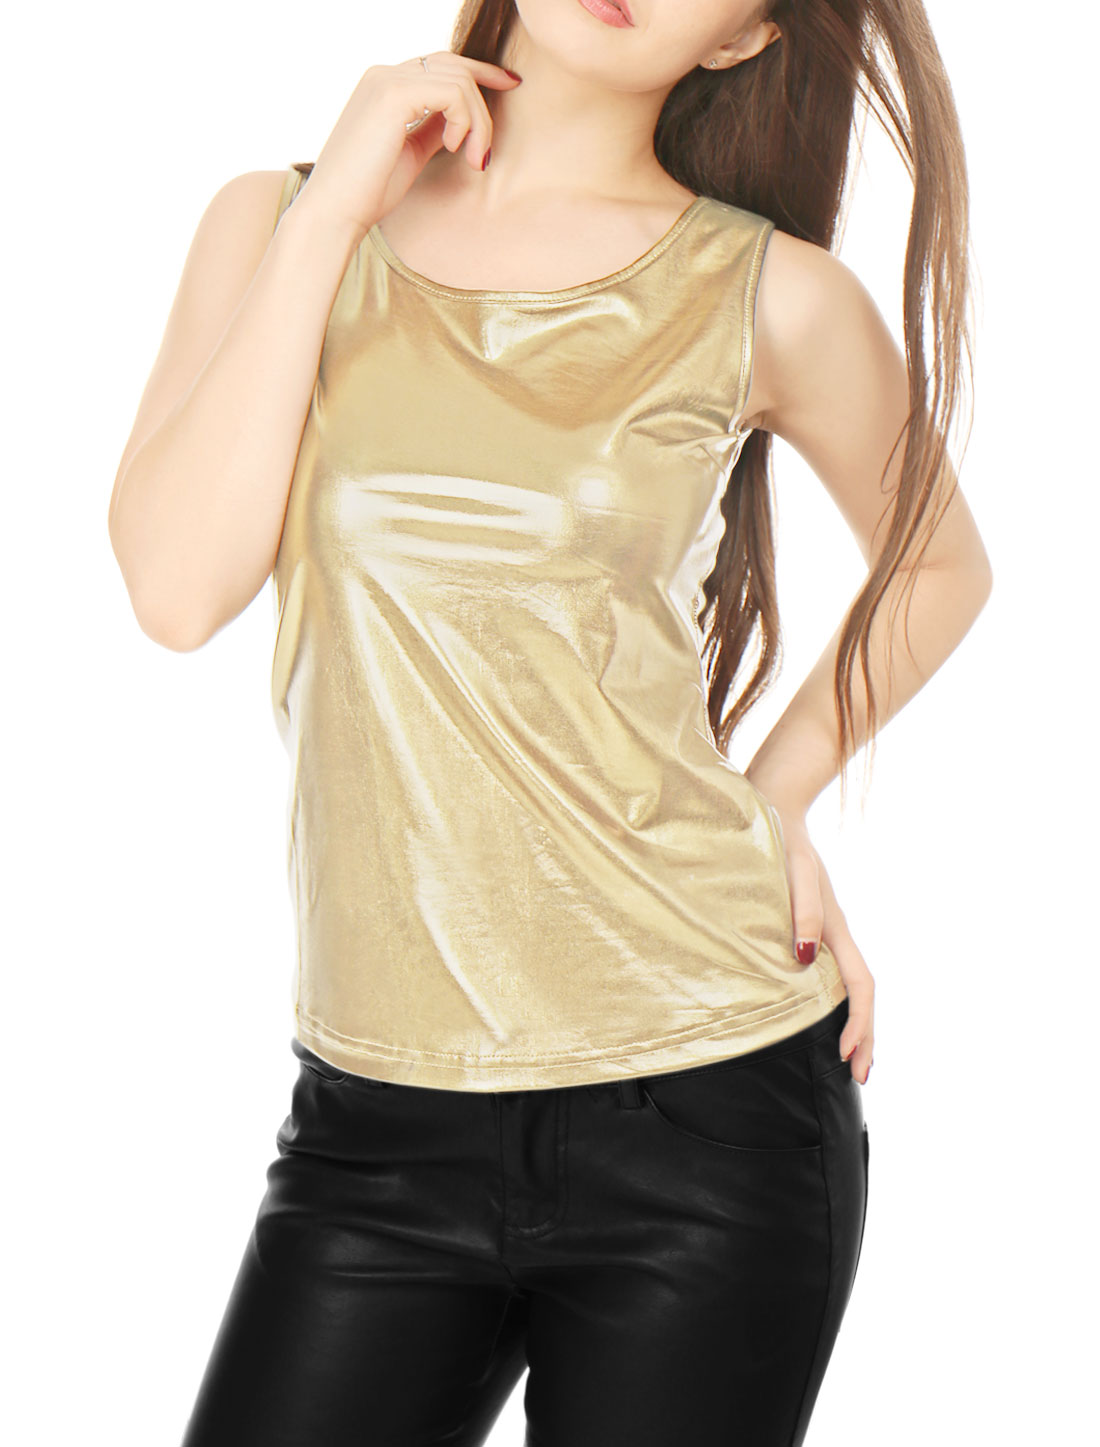 Sleeveless U Neck Fashion Metallic Tank Top for Lady Gold M